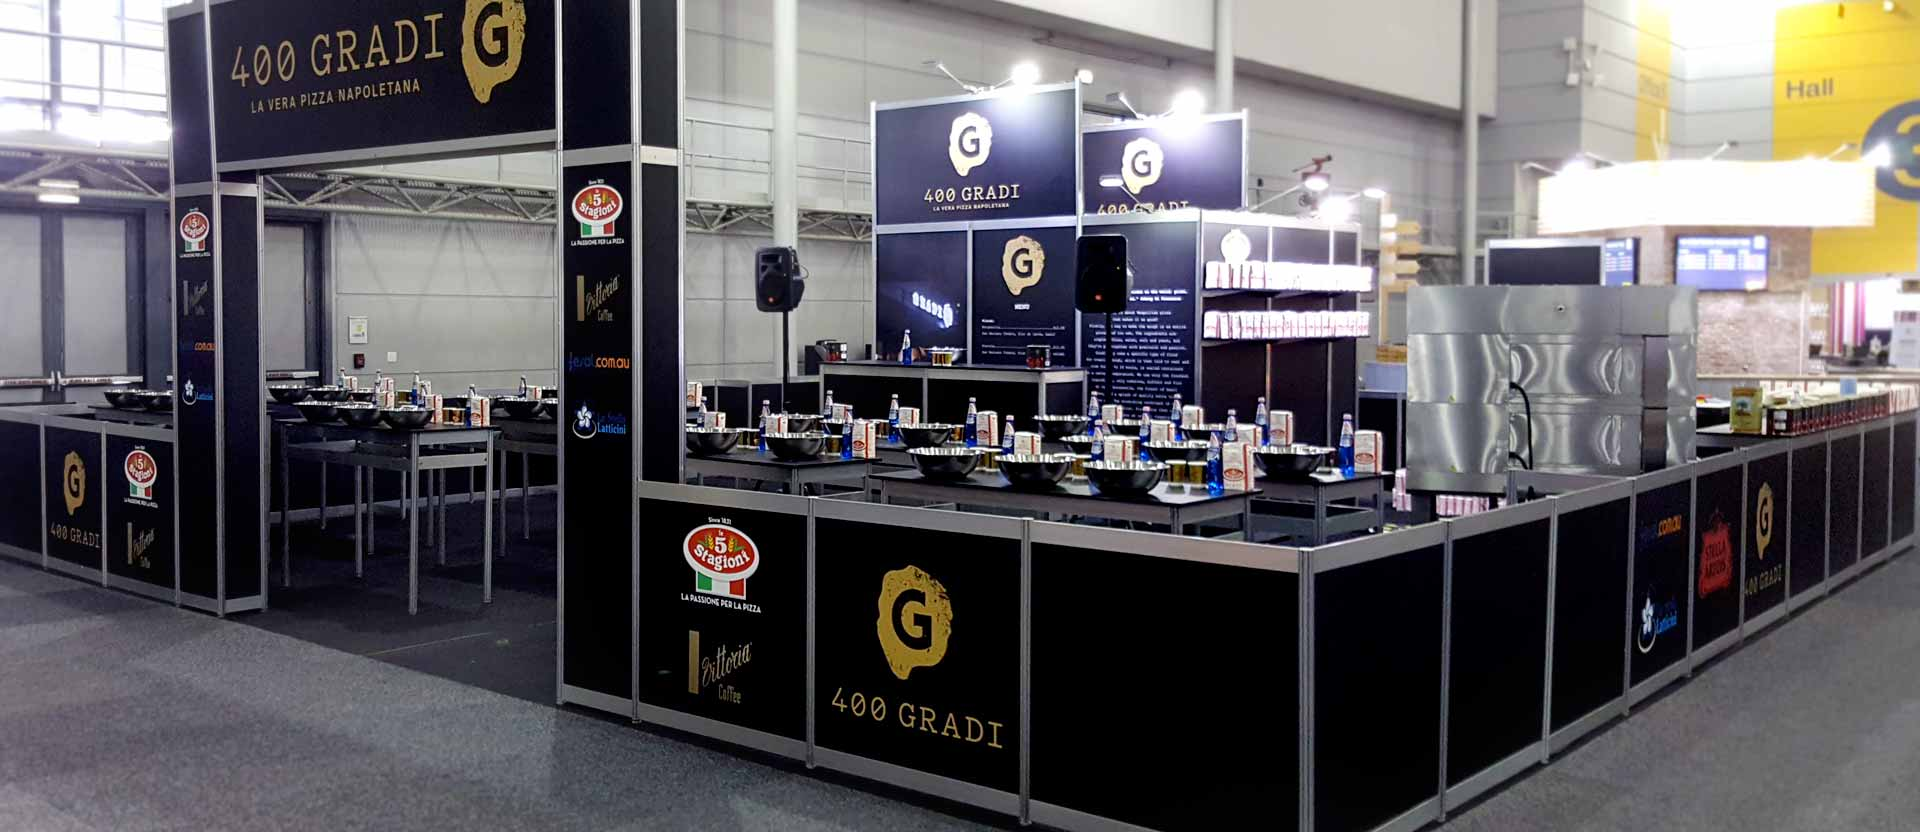 Custom fitout display for 400 Gradi at Food and Wine Expo in Brisbane 2017